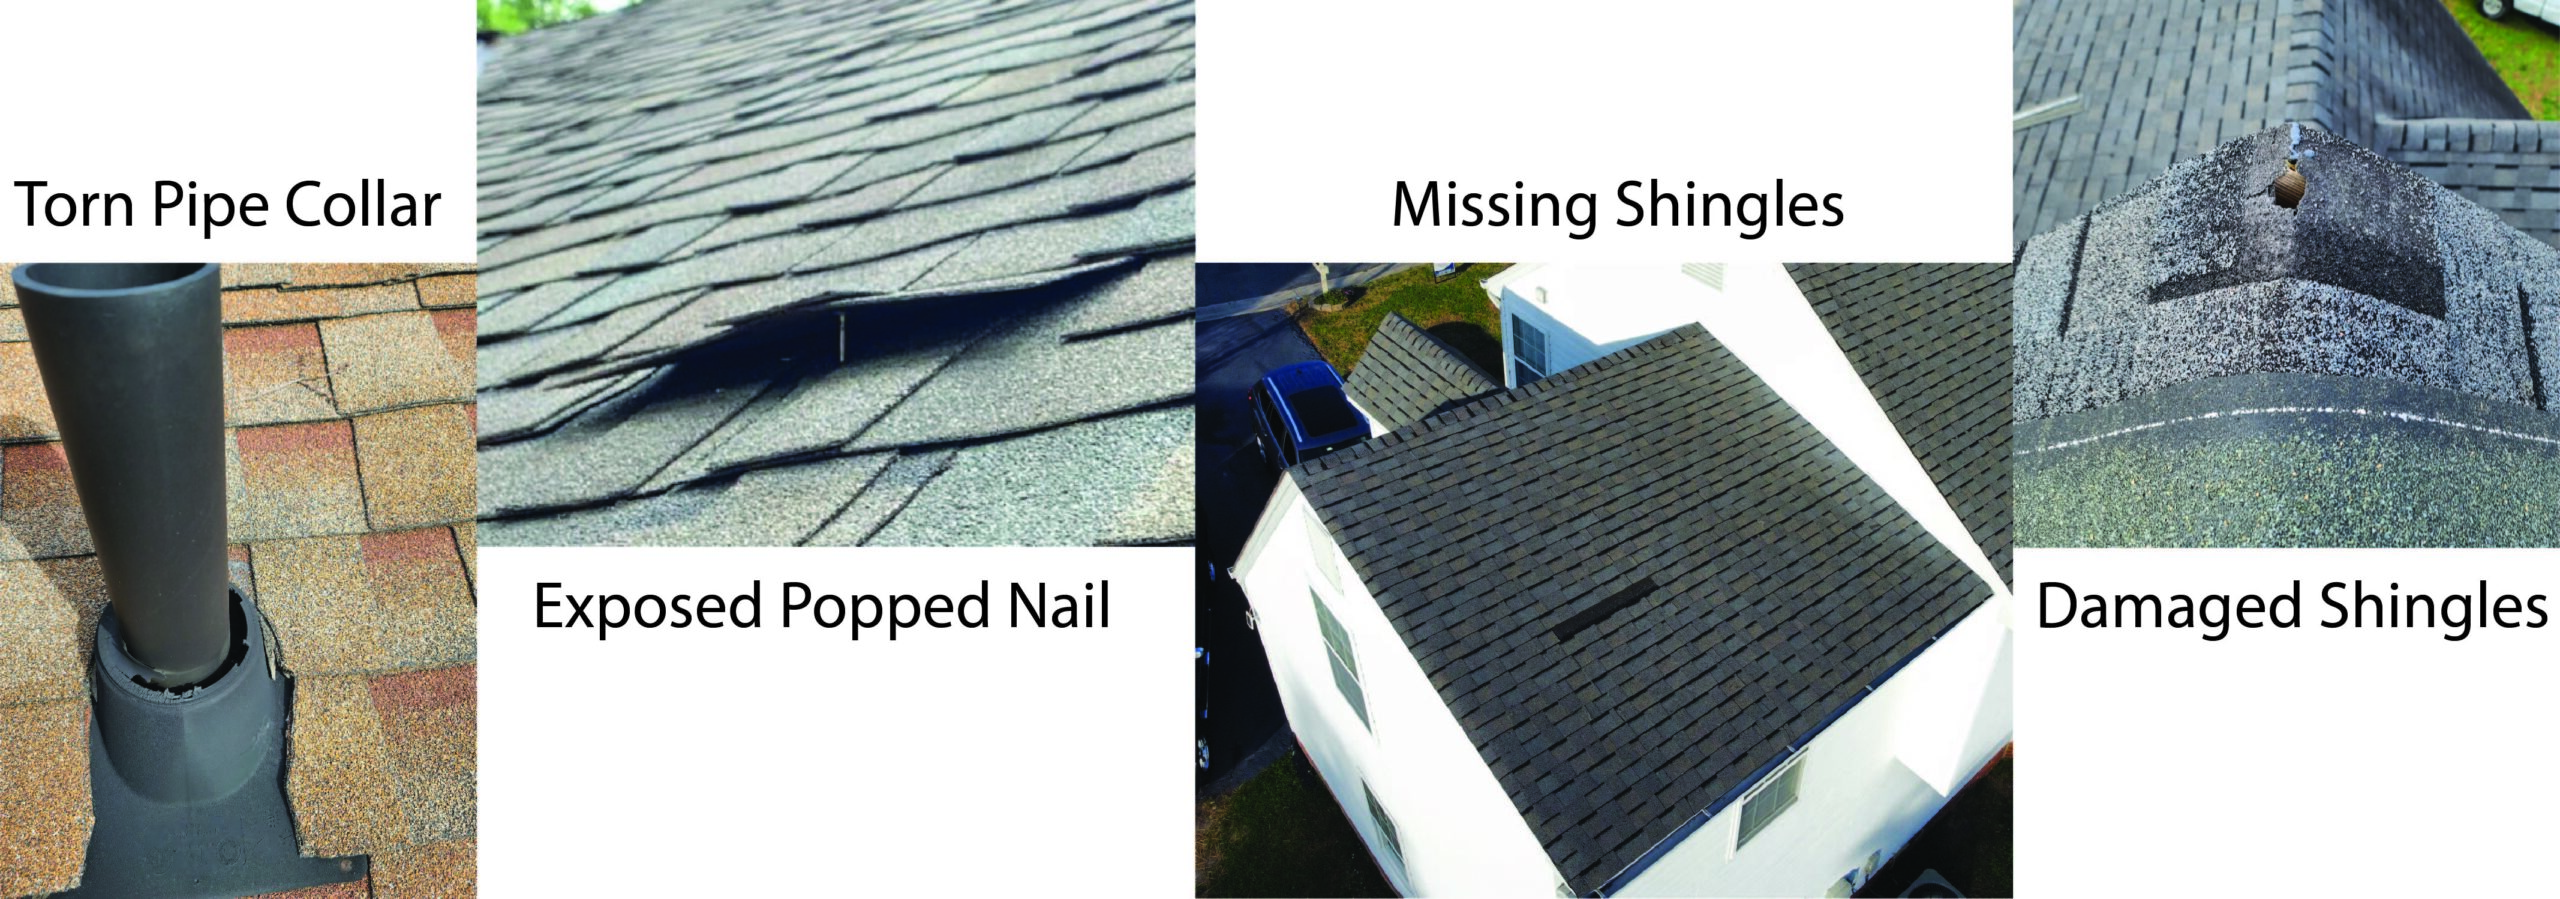 https://secureservercdn.net/198.71.233.138/lze.1ce.myftpupload.com/wp-content/uploads/Common-Roof-Repairs-scaled.jpg?time=1624486590